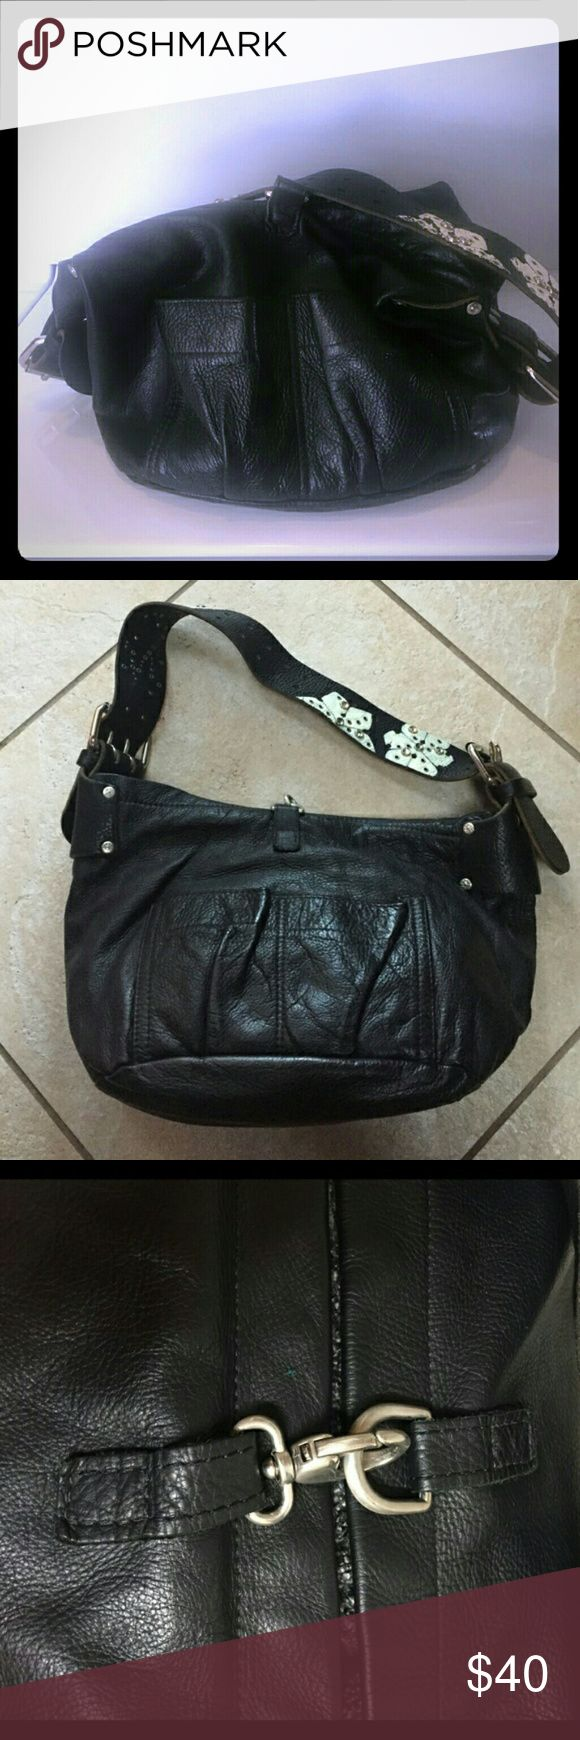 Tylie Malibu black floral leather slouch bag Tylie Malibu black floral leather slouch bag. This is a reposh. Please don't lowball me. I'm just trying to get my money back. Super cute bag. 10 x 9. Just too big for my meager necessities lol tylie malibu Bags Shoulder Bags